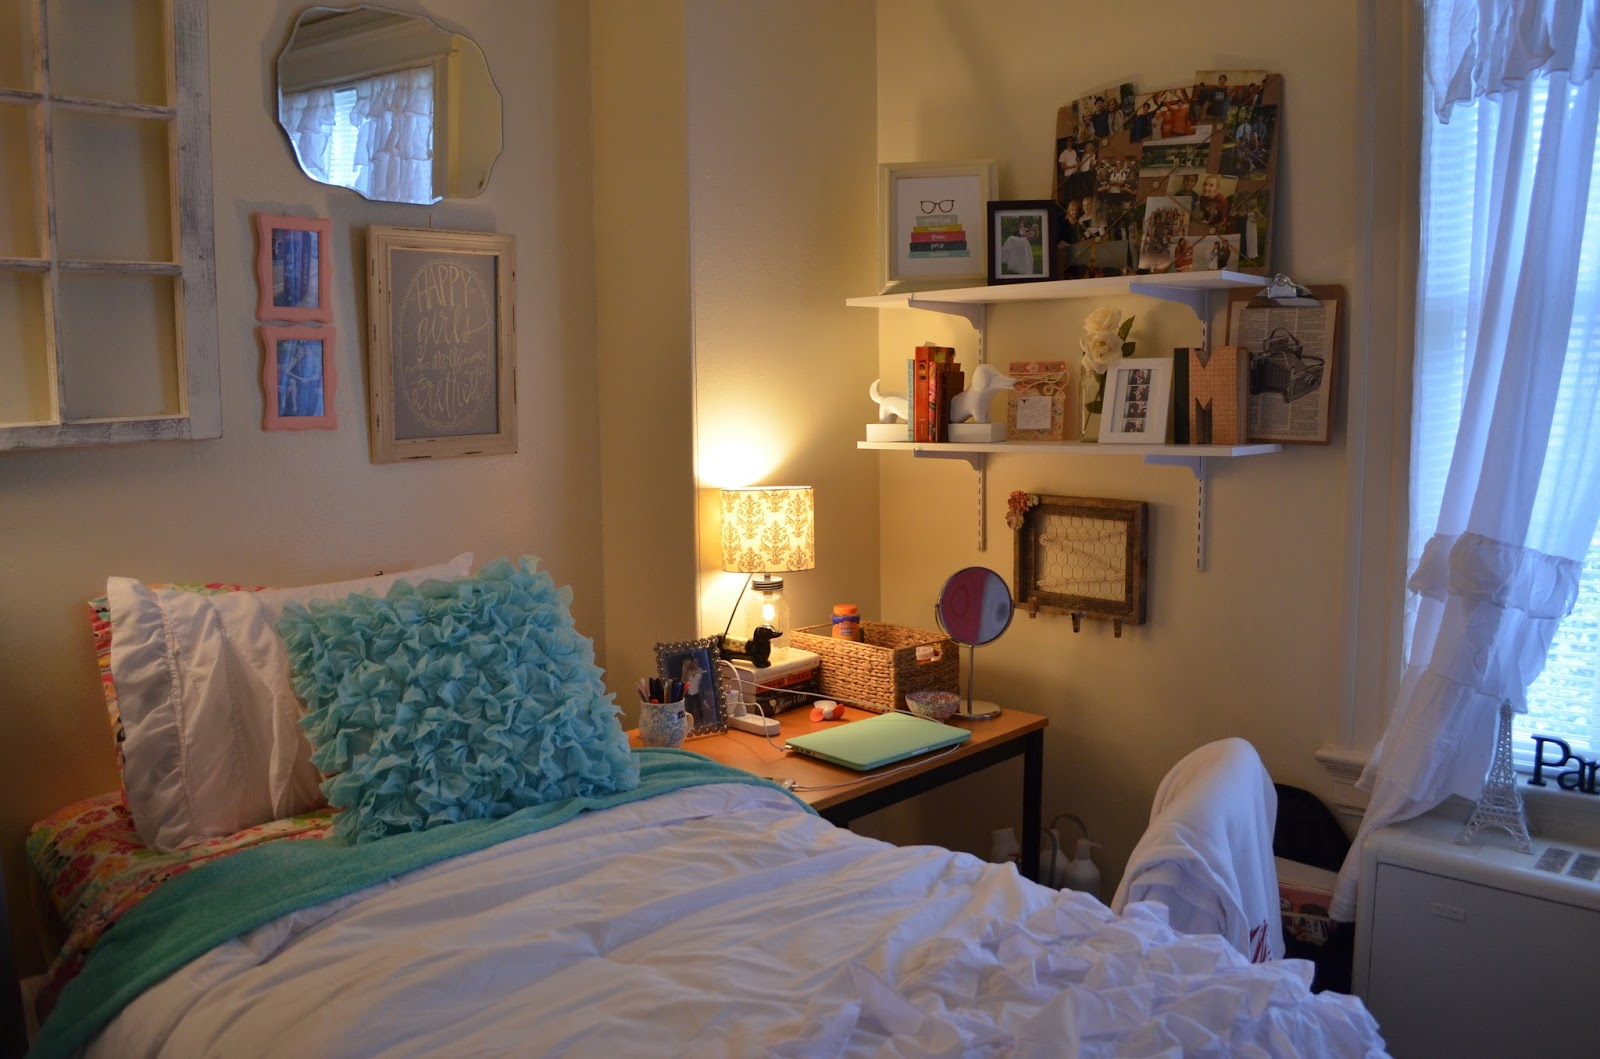 living in dorm essay Living in a small dorm room can make anyone feel claustrophobic pretty quickly it pays to get out of your room and go study or hang out elsewhere it's more than just a change of scene, you will meet more people this way.